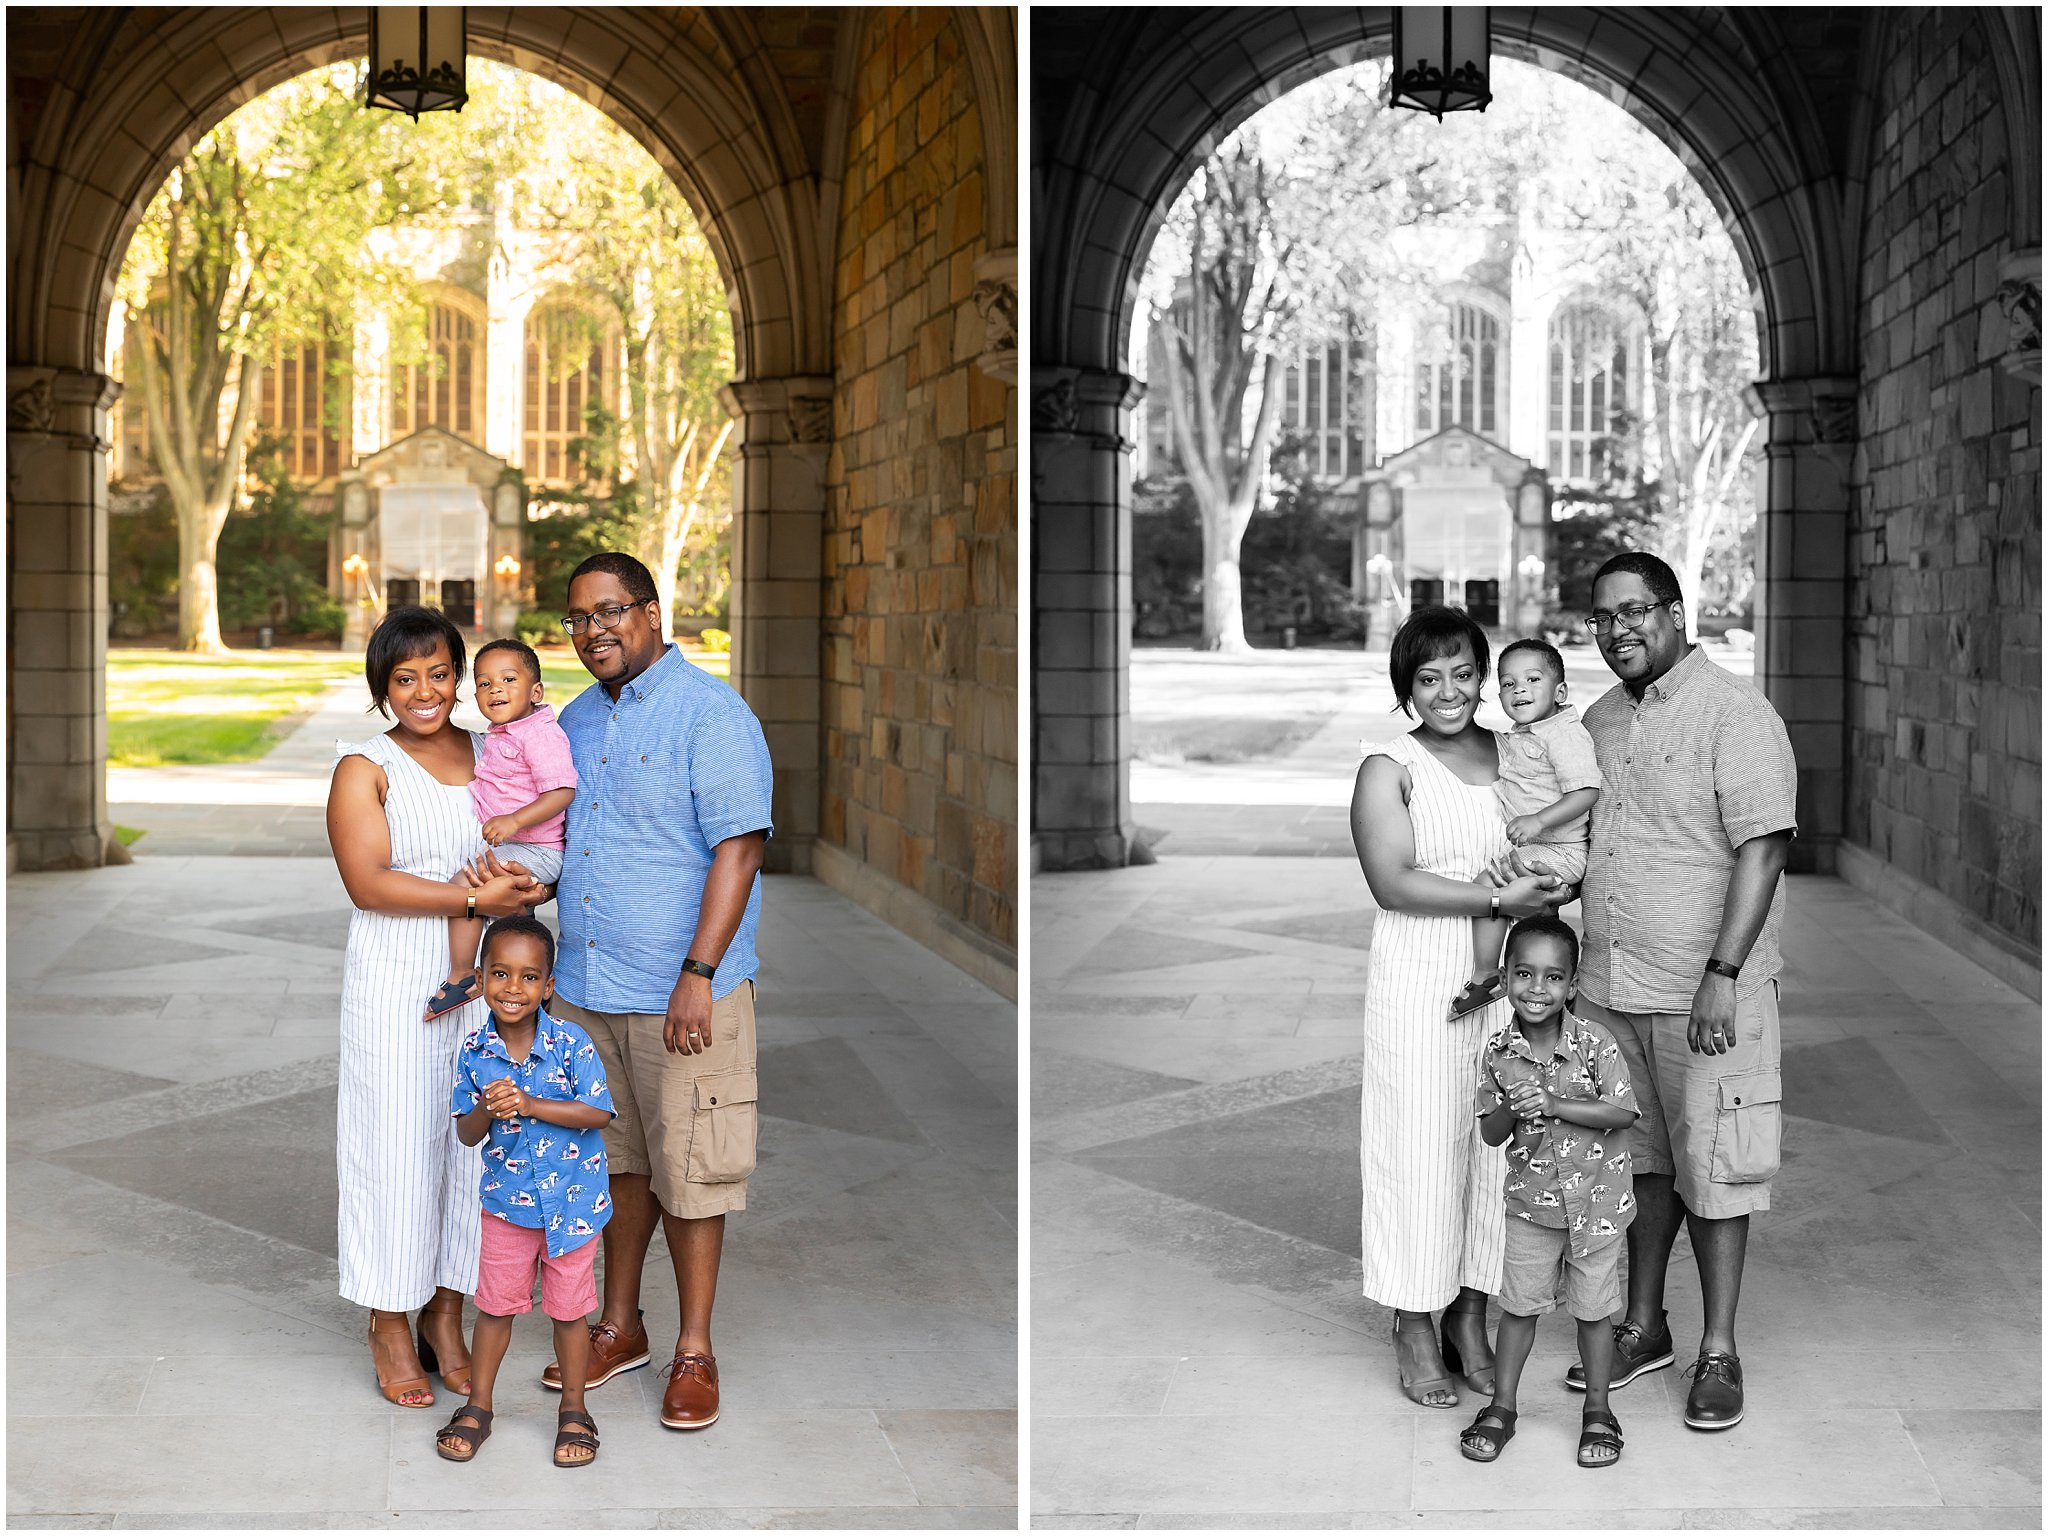 Spring Family Photos in the Law Quad | Ann Arbor Family Photographer